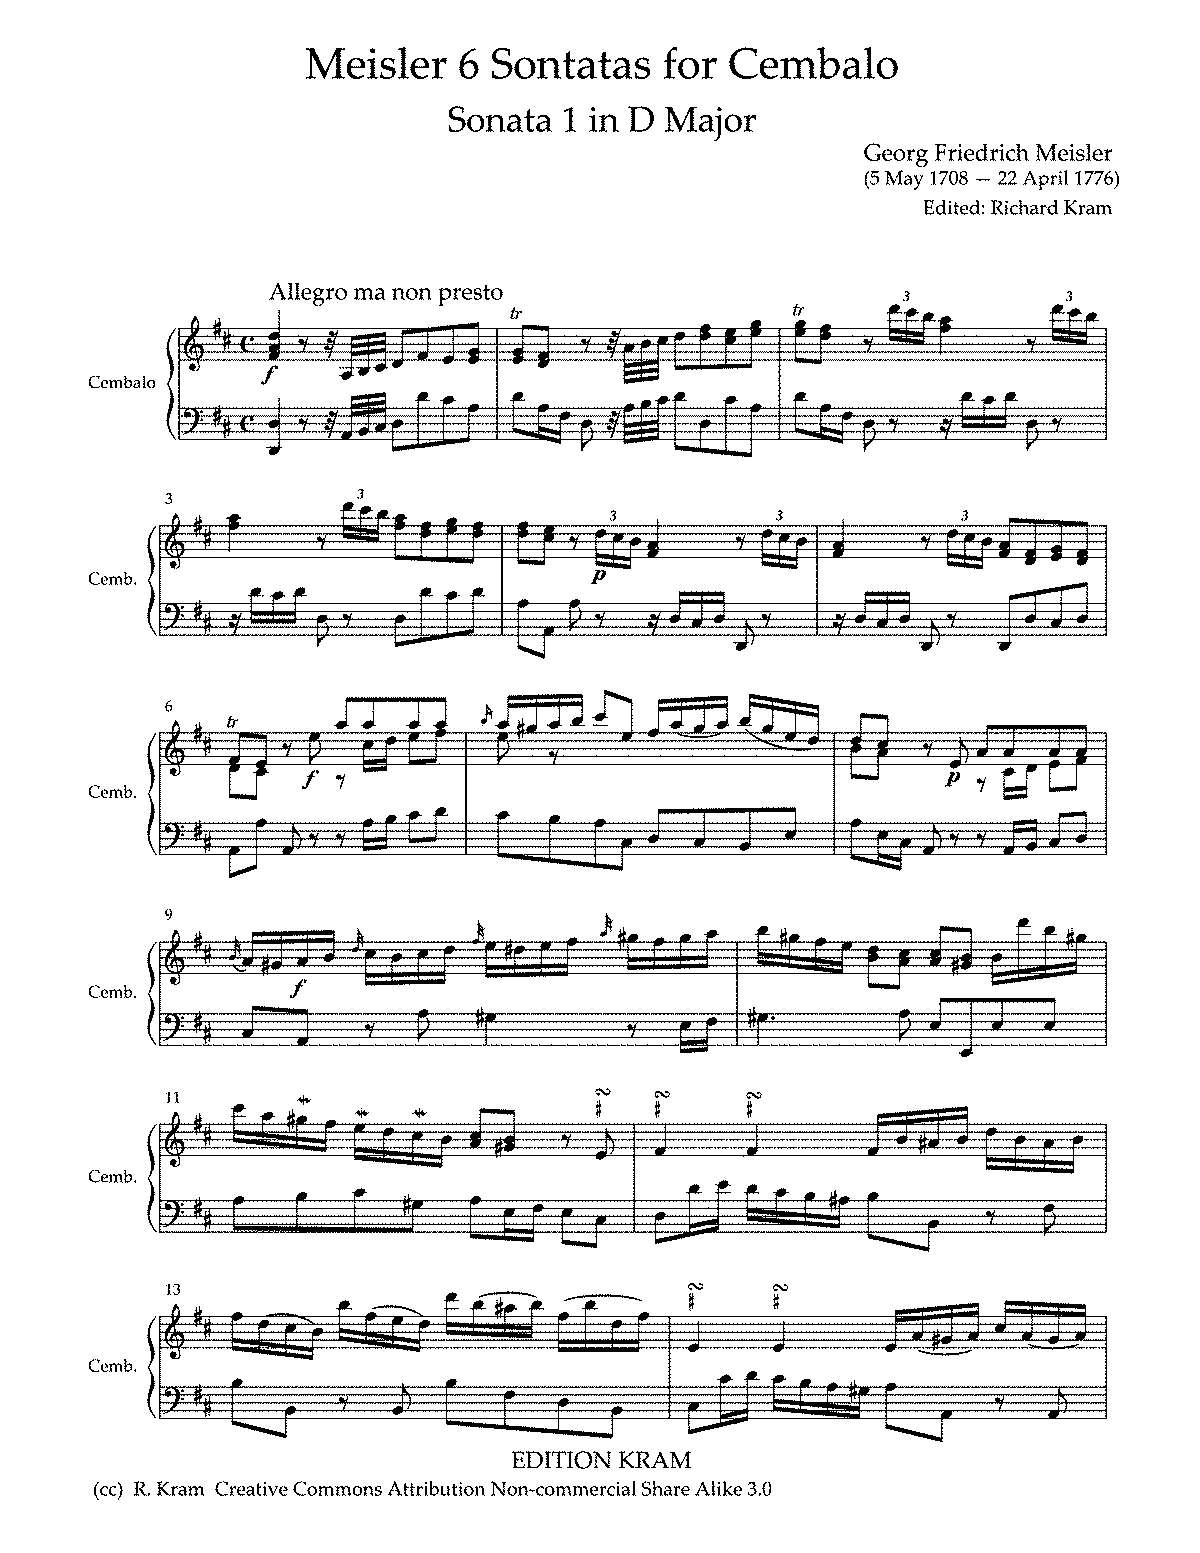 PMLP102445-Six Sonatas for Cembalo No 1 in D major.pdf